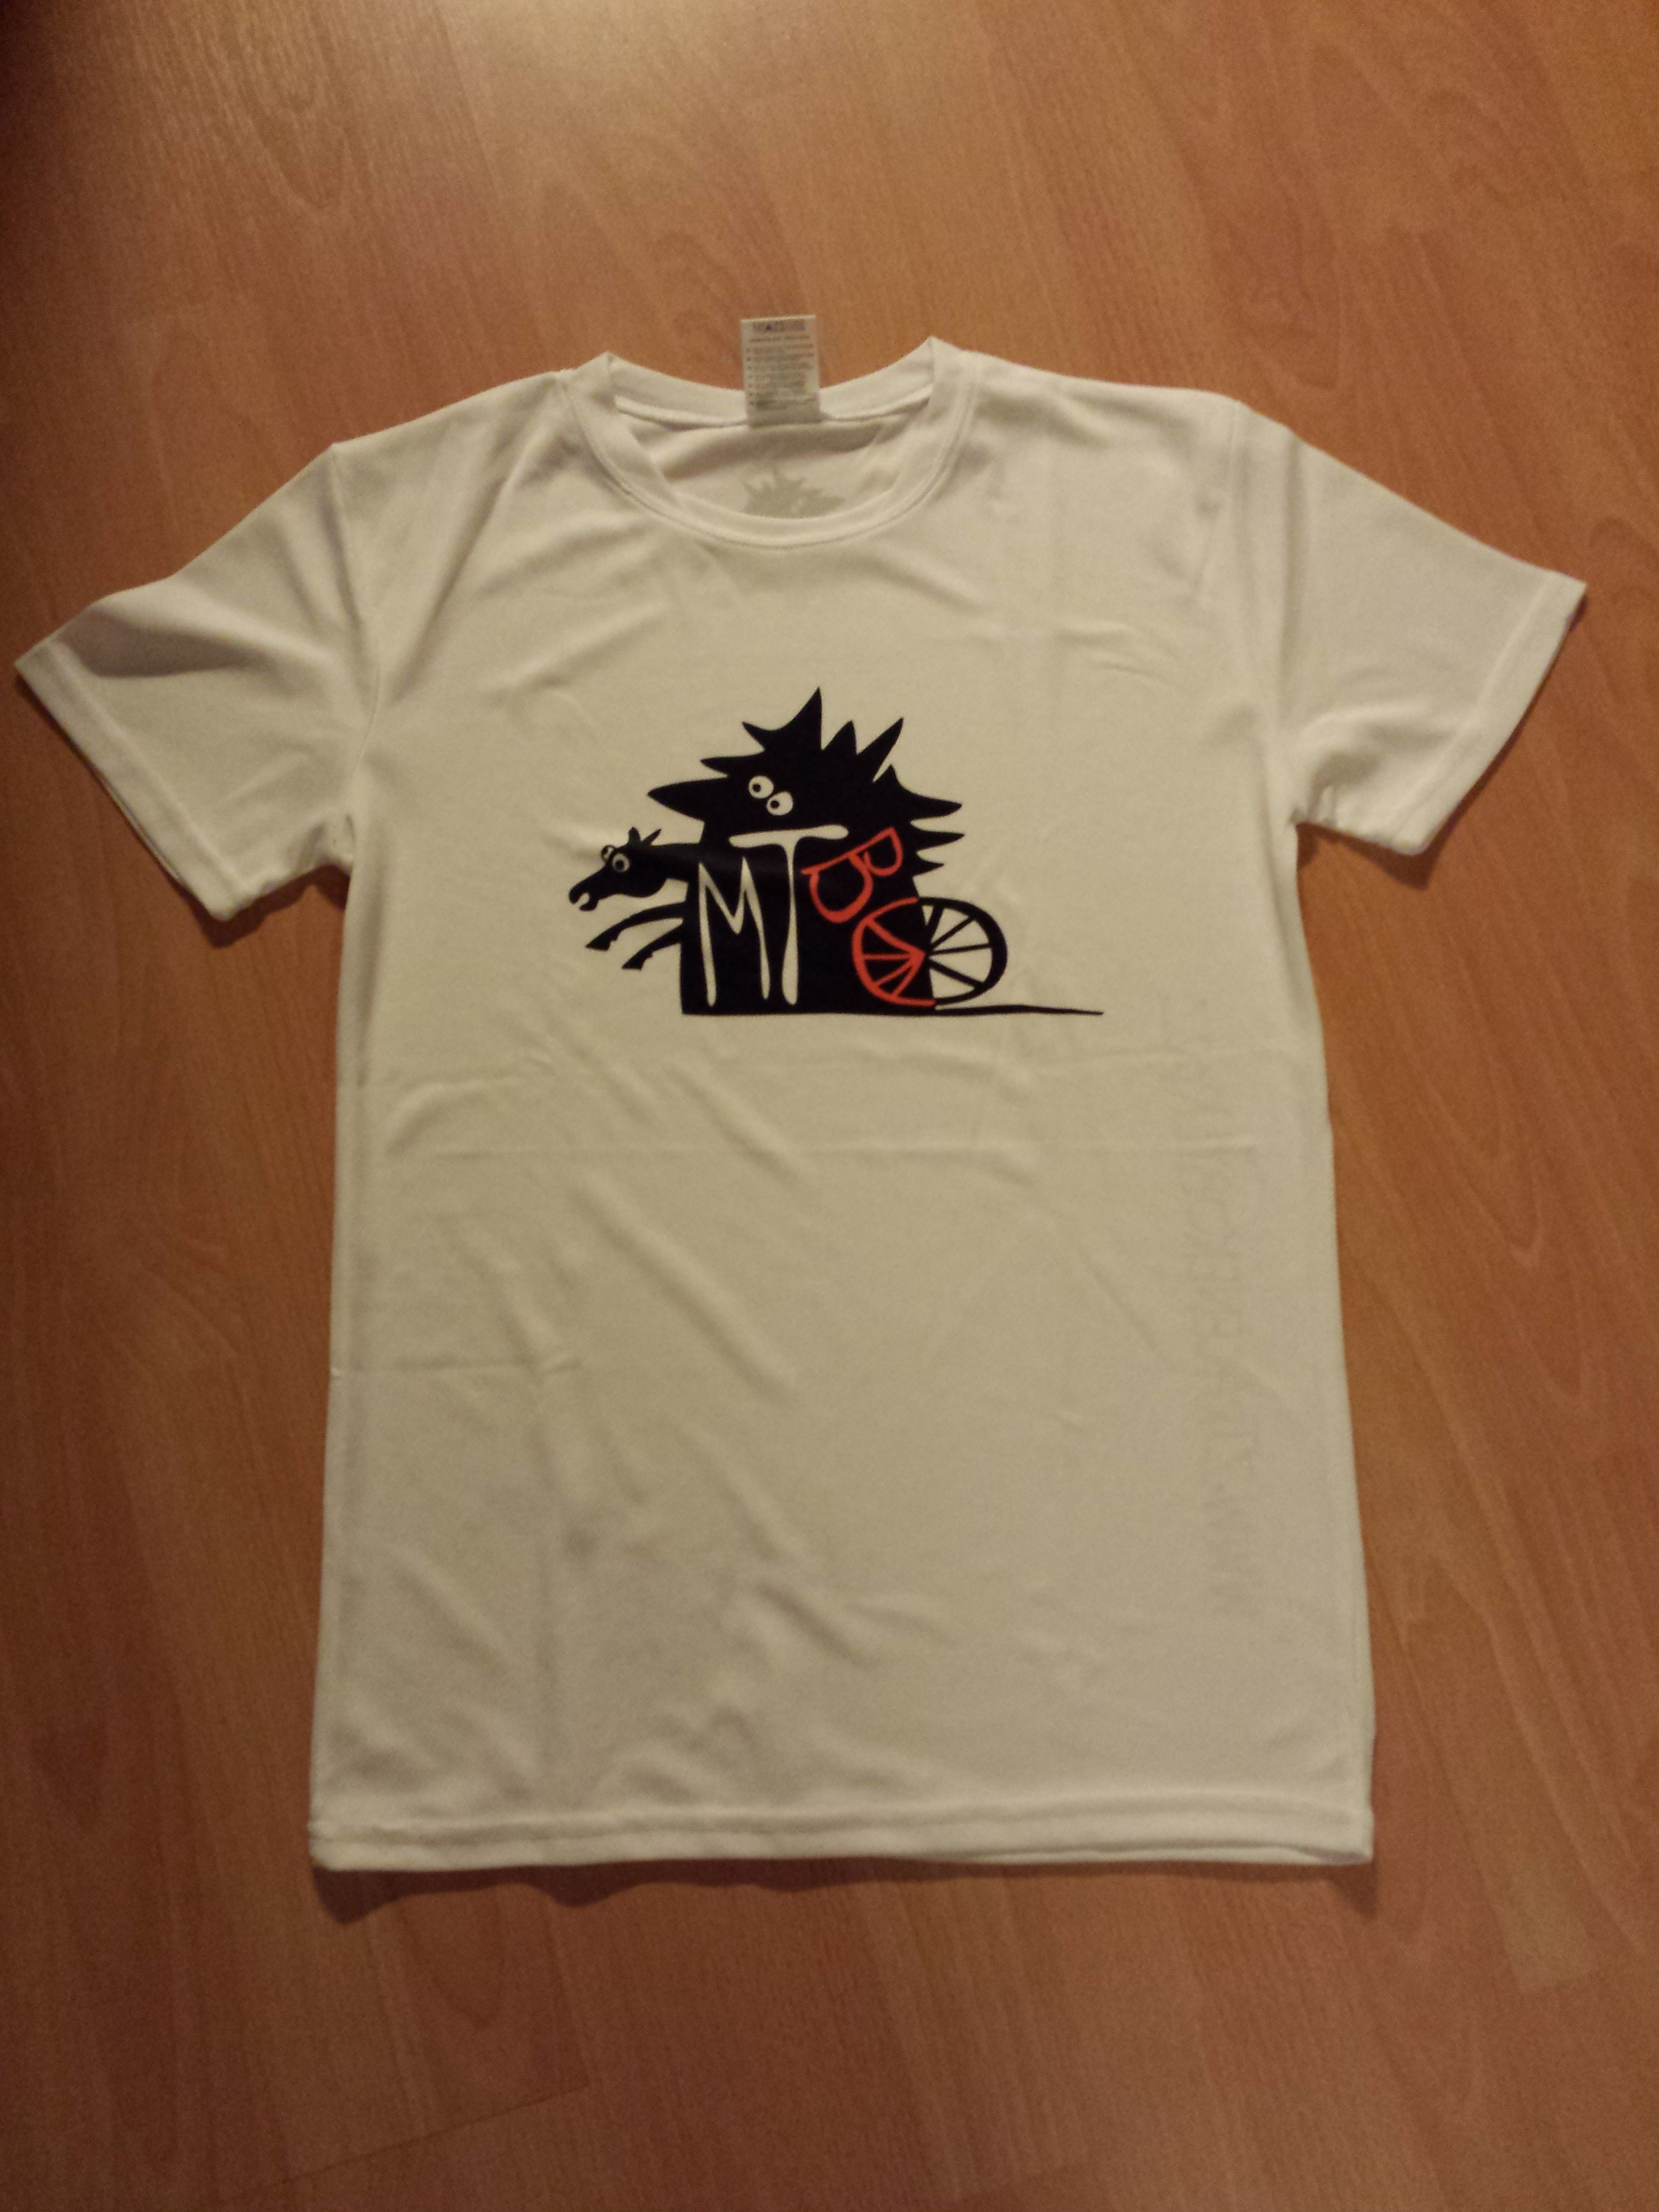 zk_tricko_2014_front